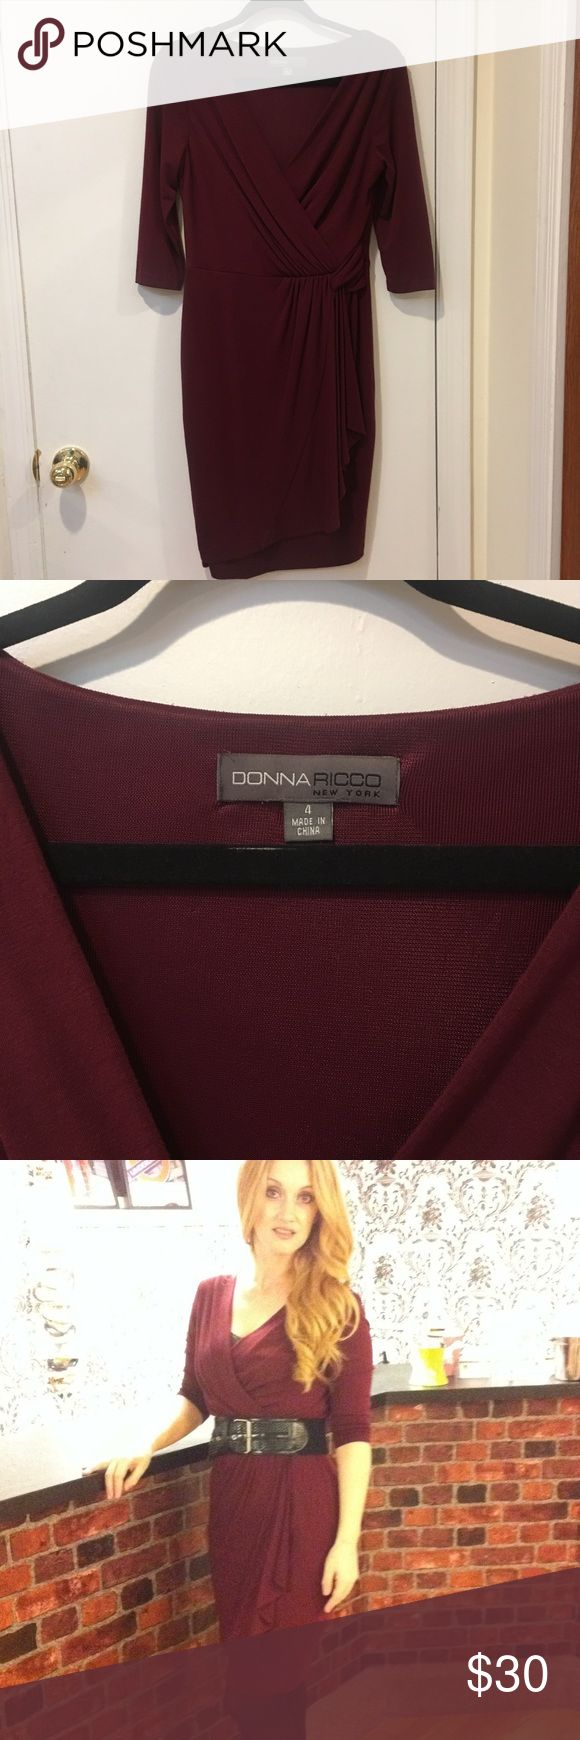 Donna Ricco maroon dress Maroon wrap style dress- synched at the waist. Very flexible with price so make an offer! Donna Ricco Dresses Midi